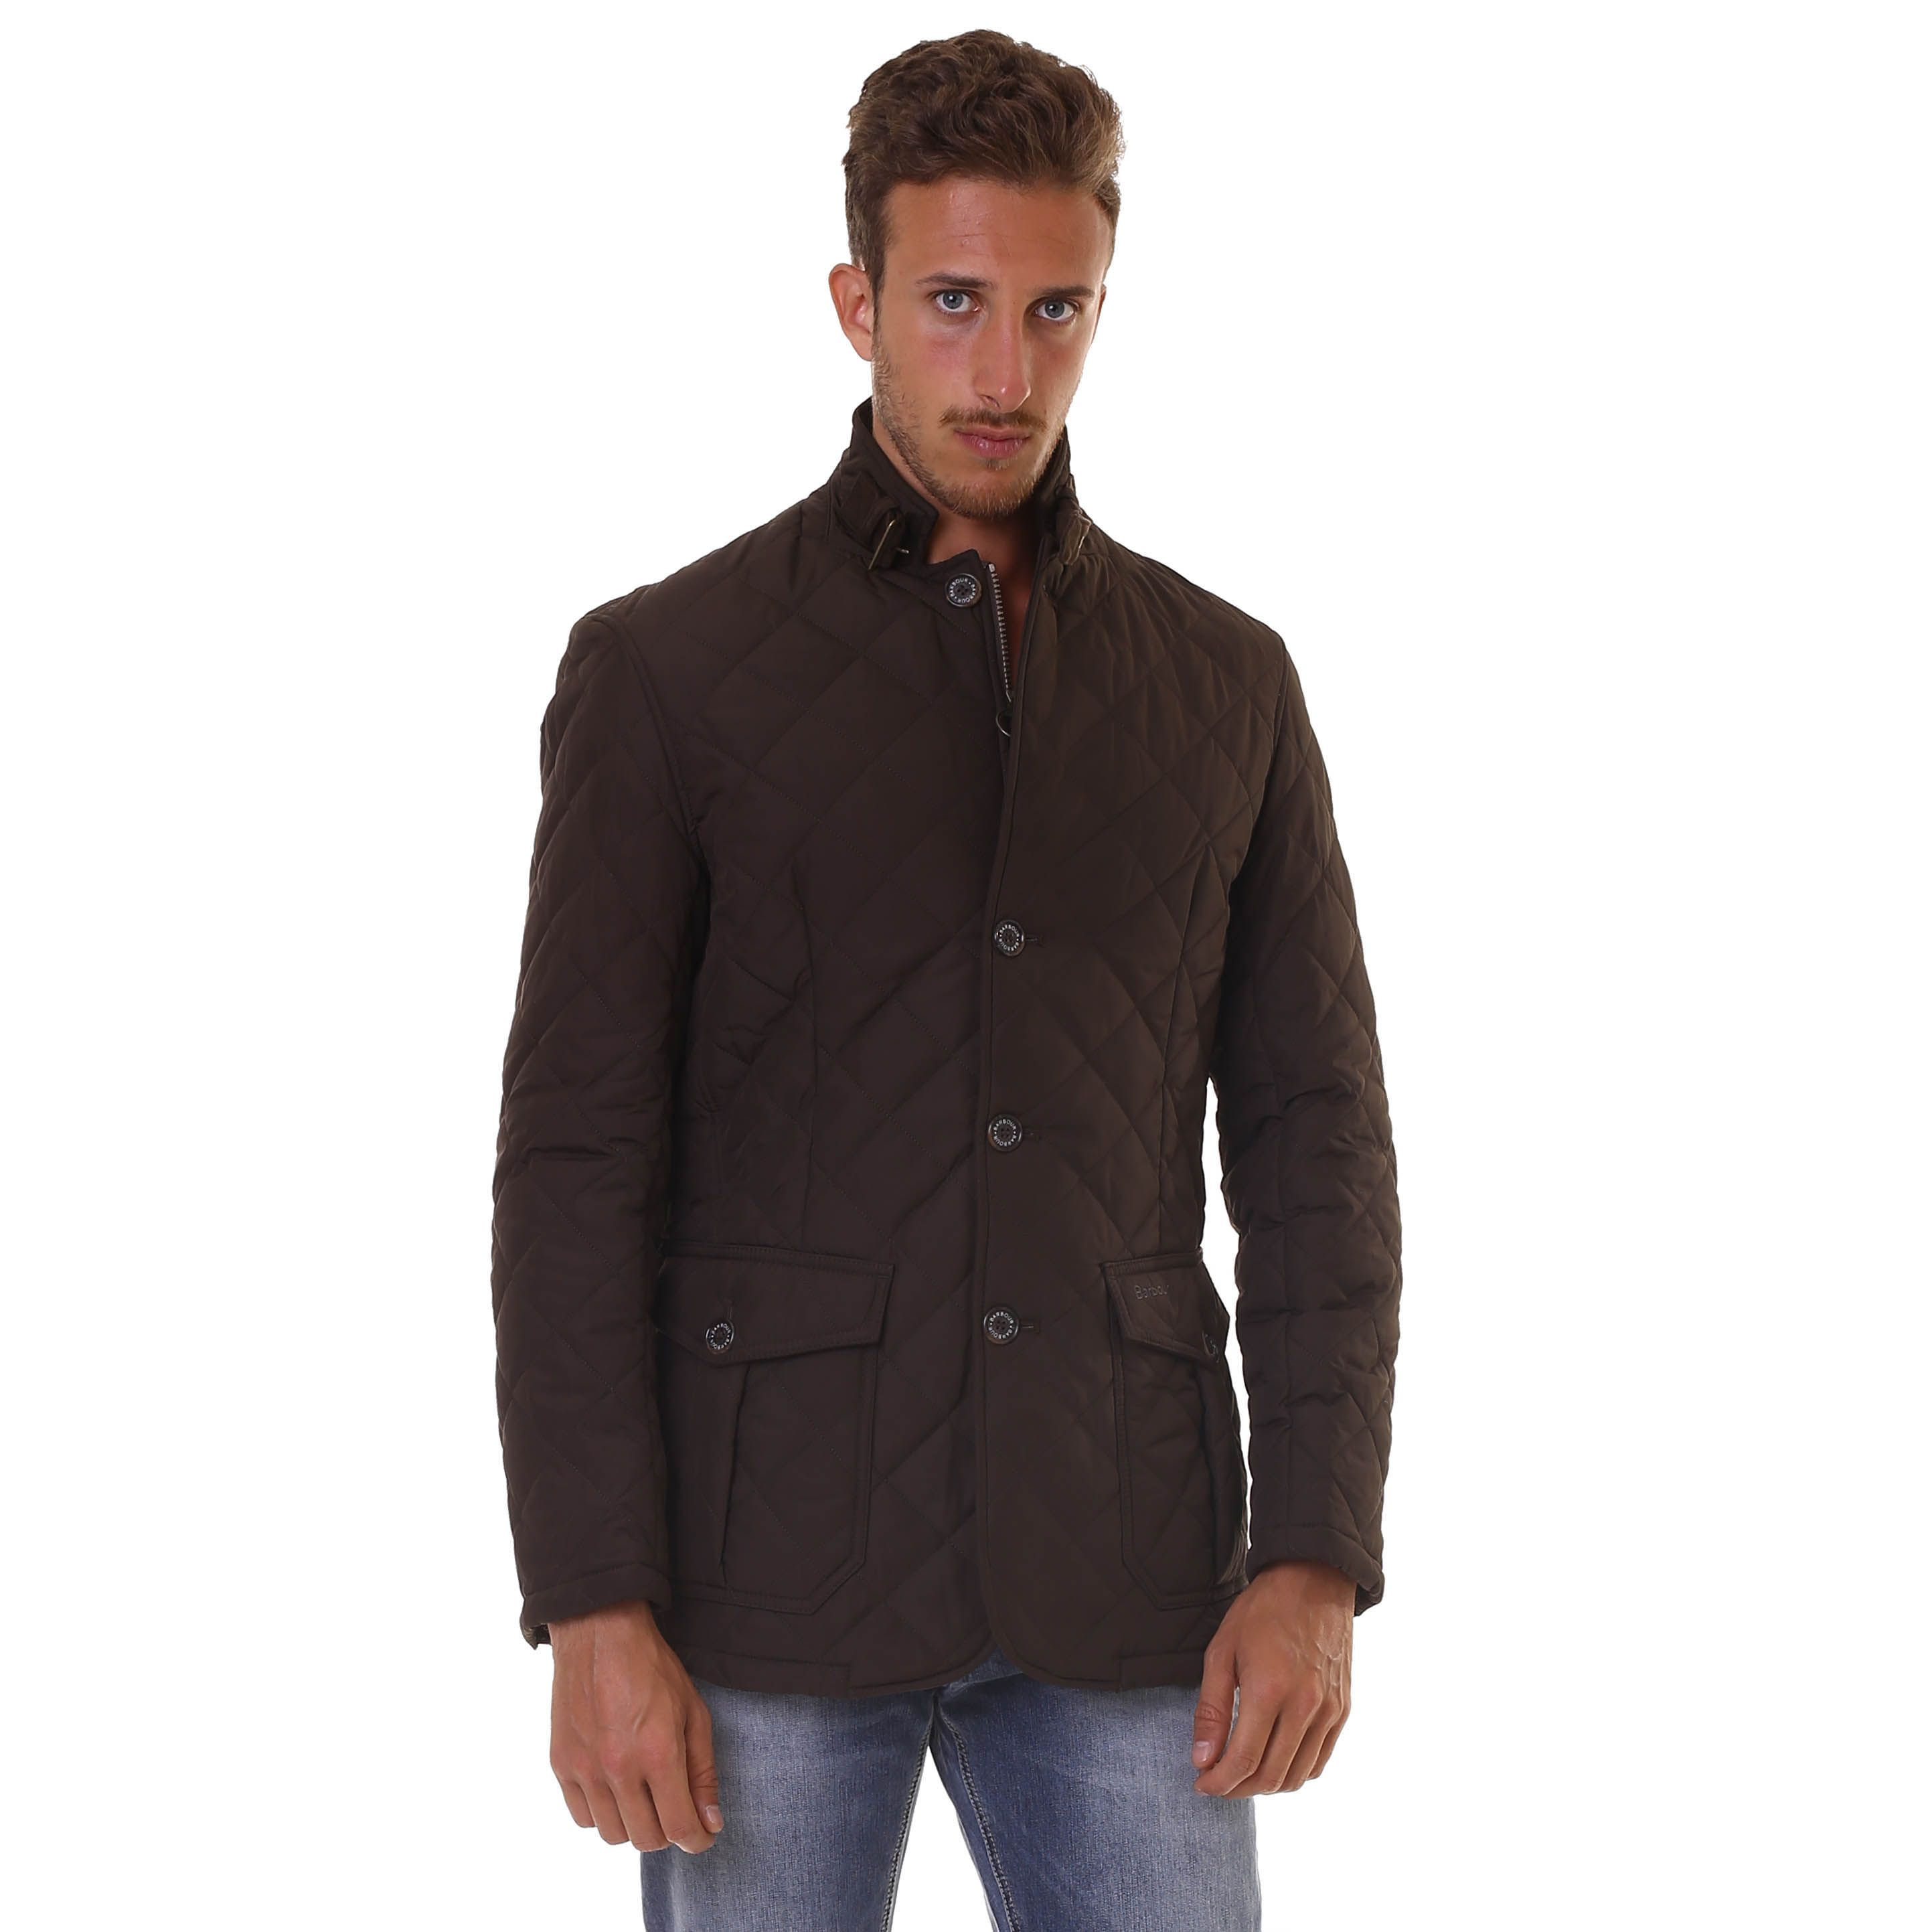 BARBOUR QUILTED LUTZ JACKET OL51 (con immagini) Giacca